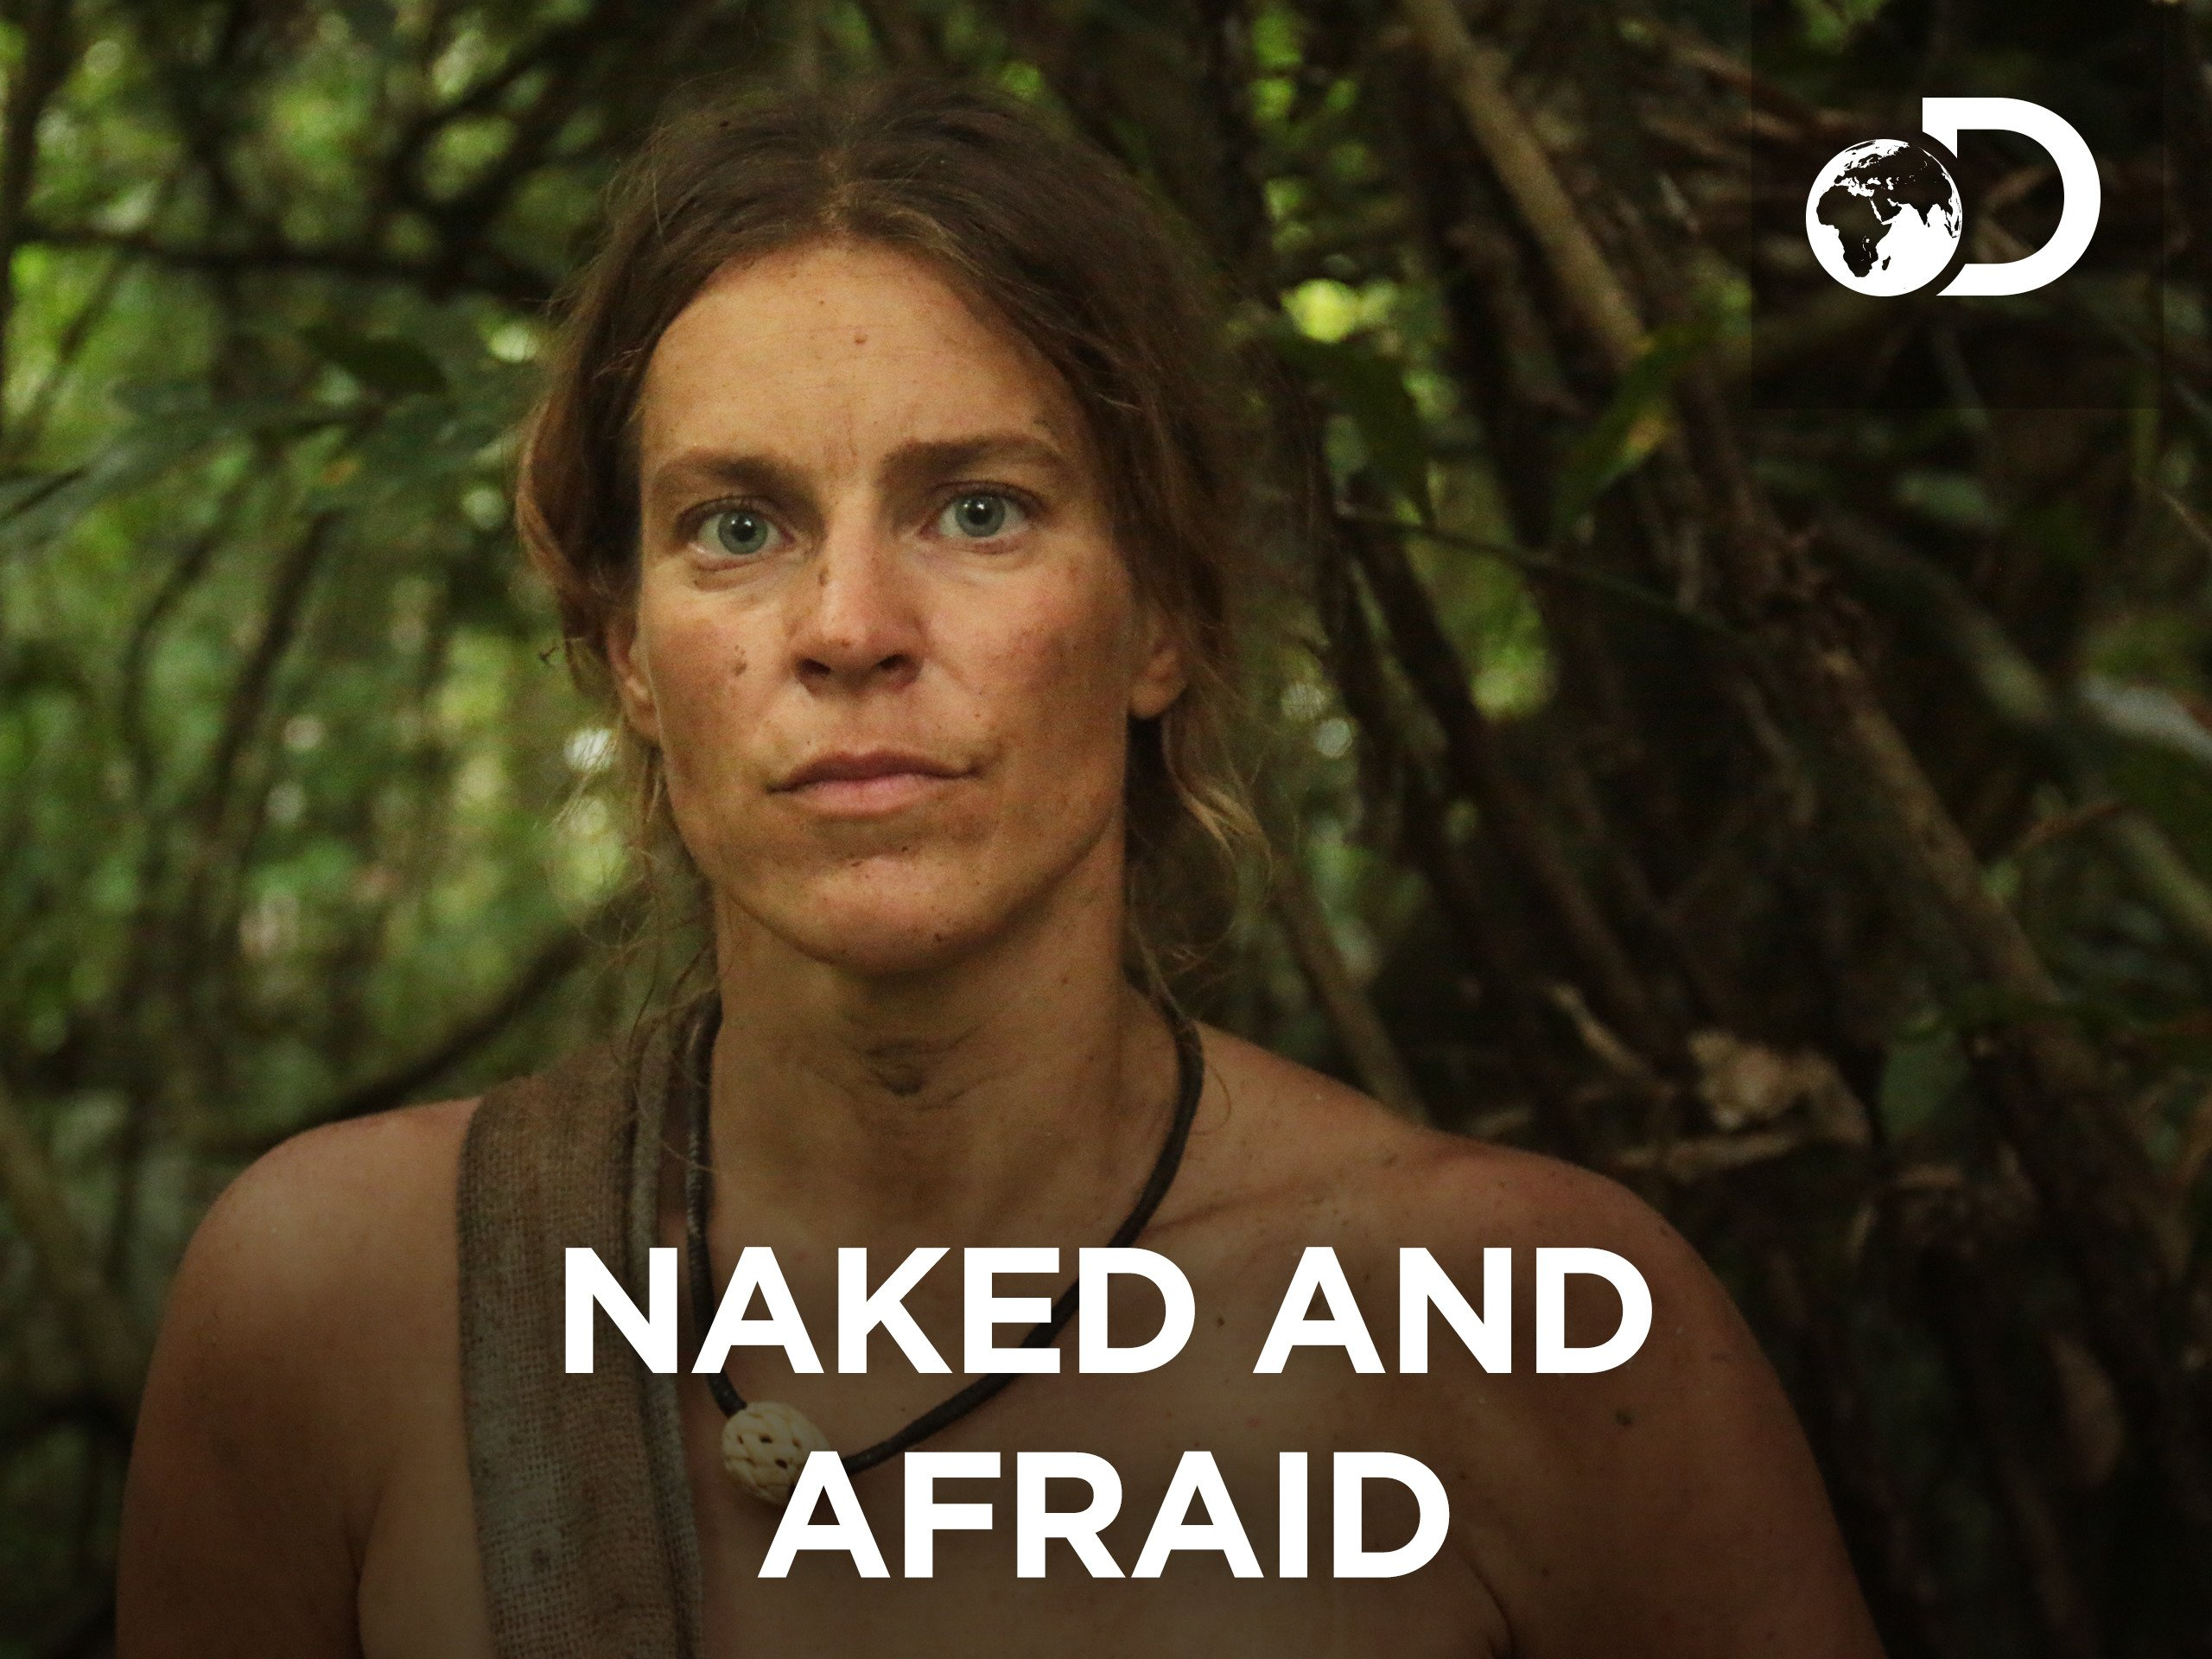 Amazon co uk: Watch Naked and Afraid Season 201 | Prime Video